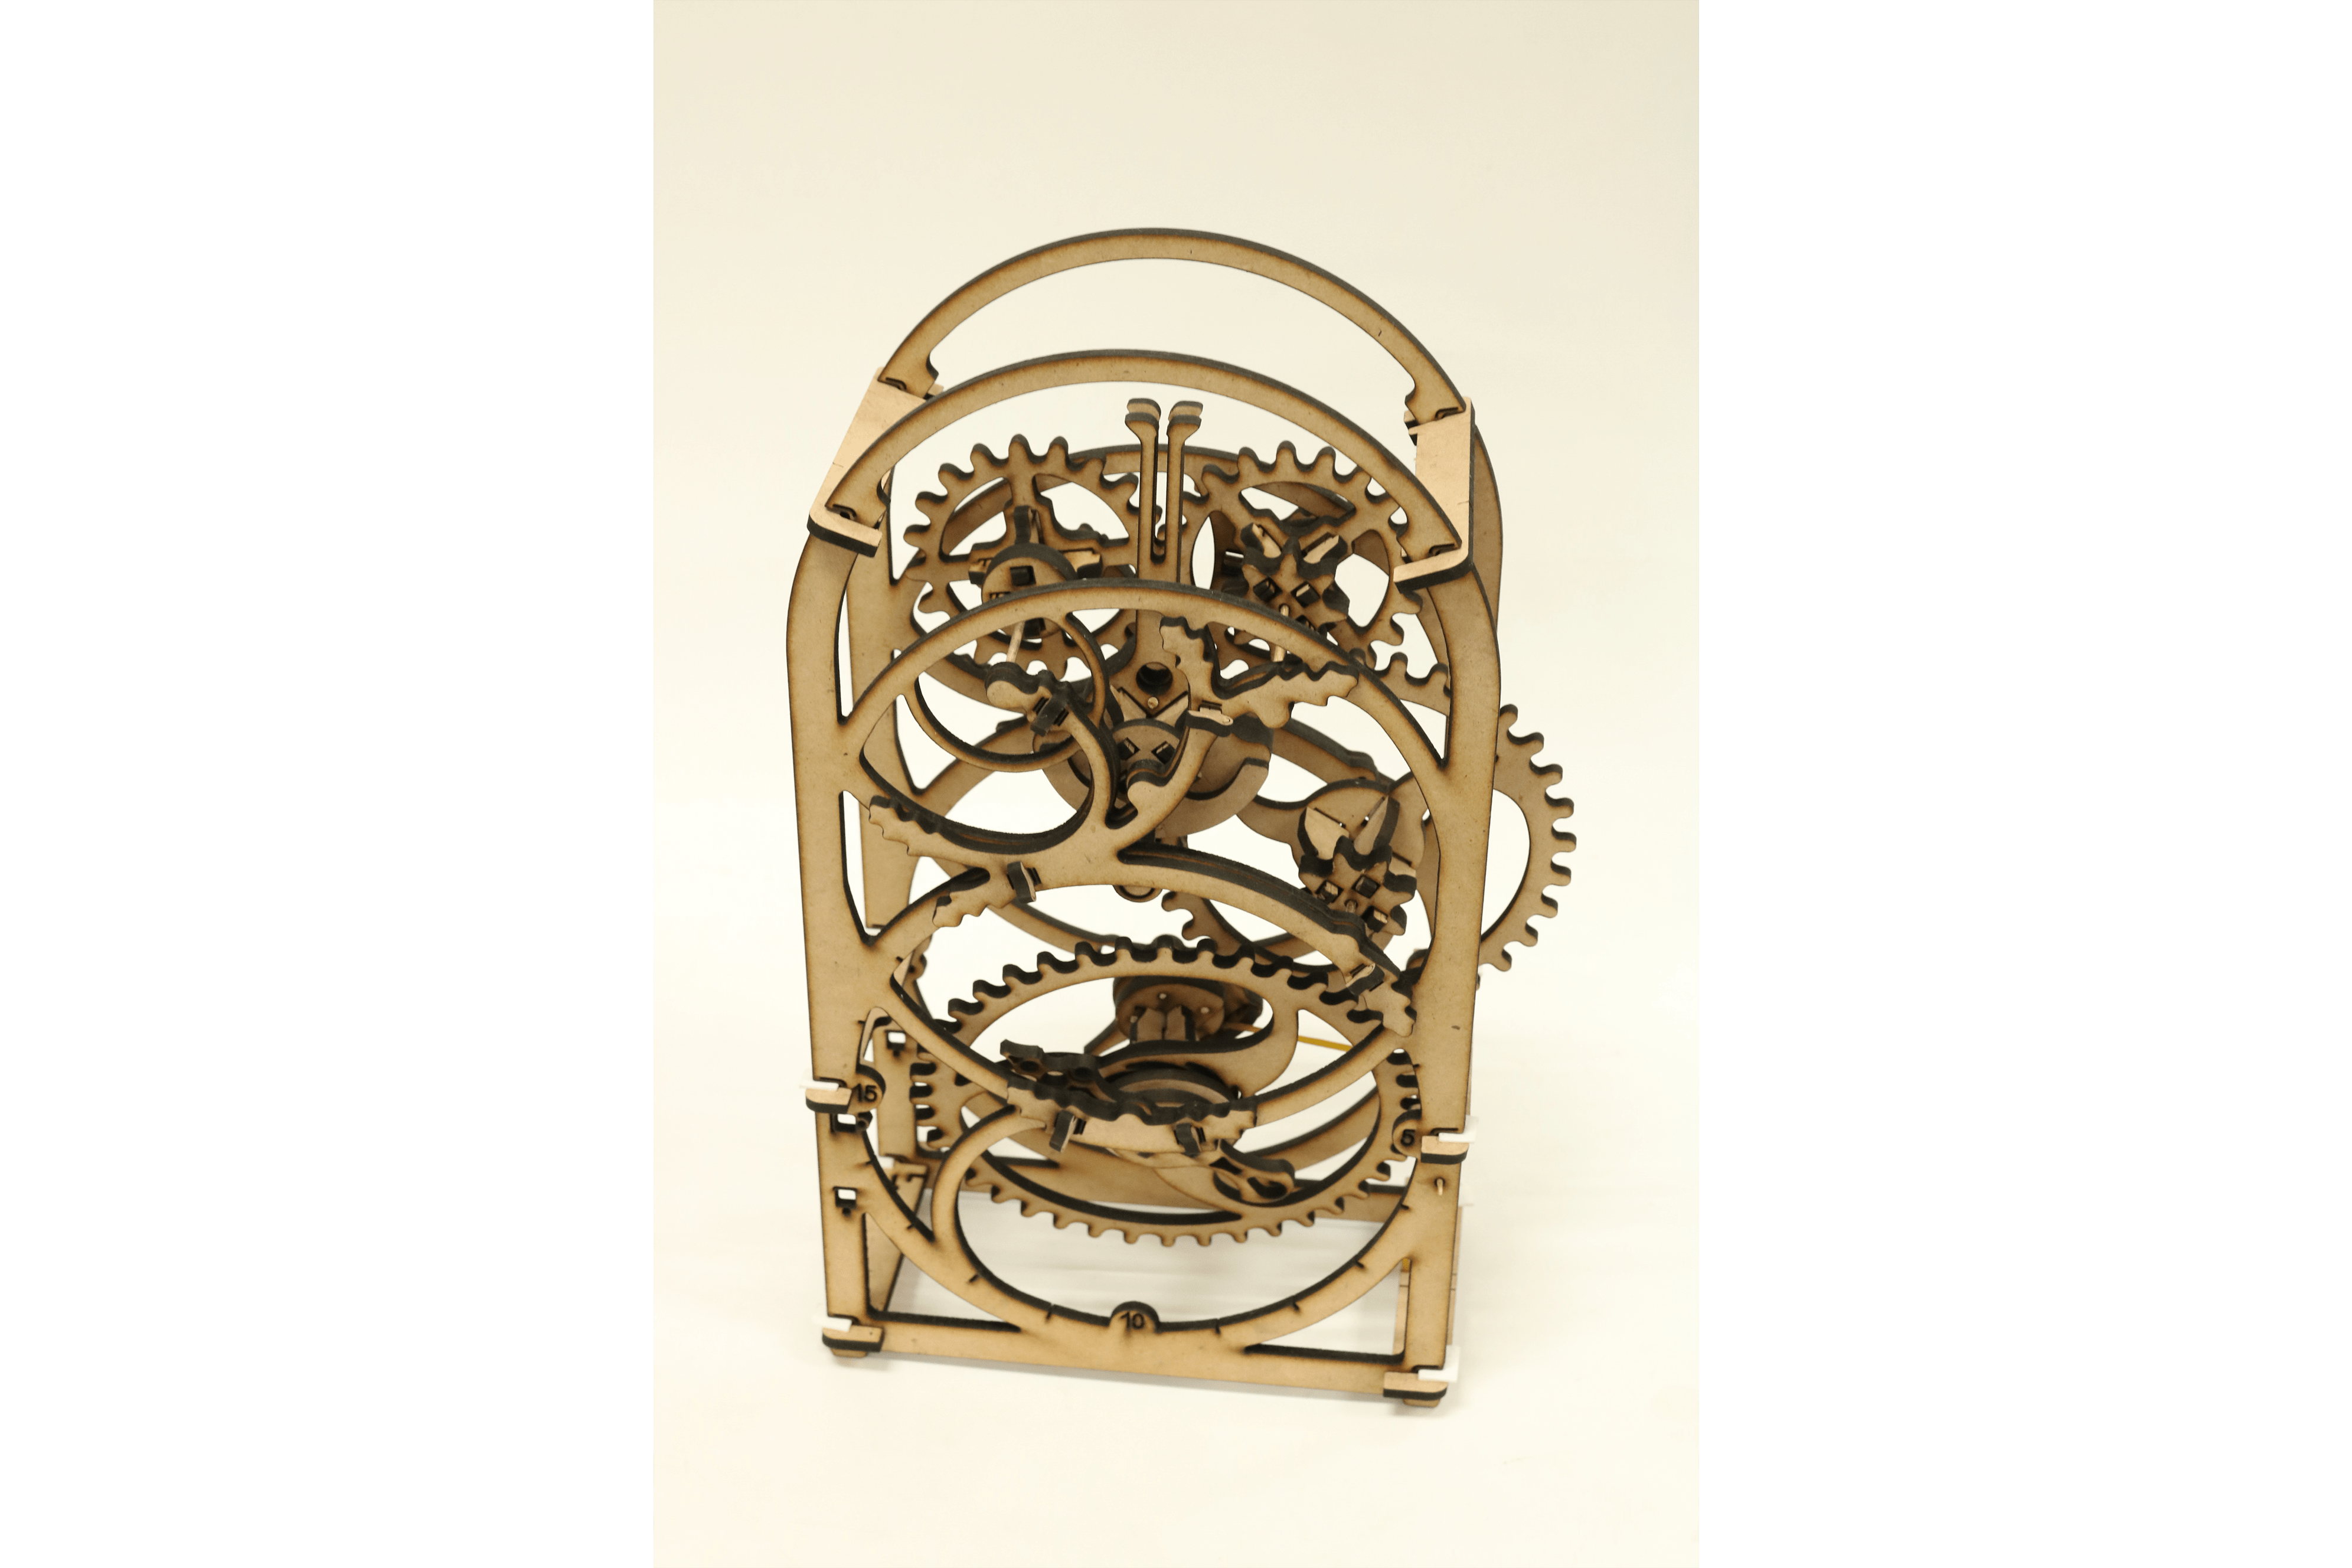 A scale model for a kinetic sculpture made of intricately lasercut MDF pieces. (By: Marvie Gasataya)